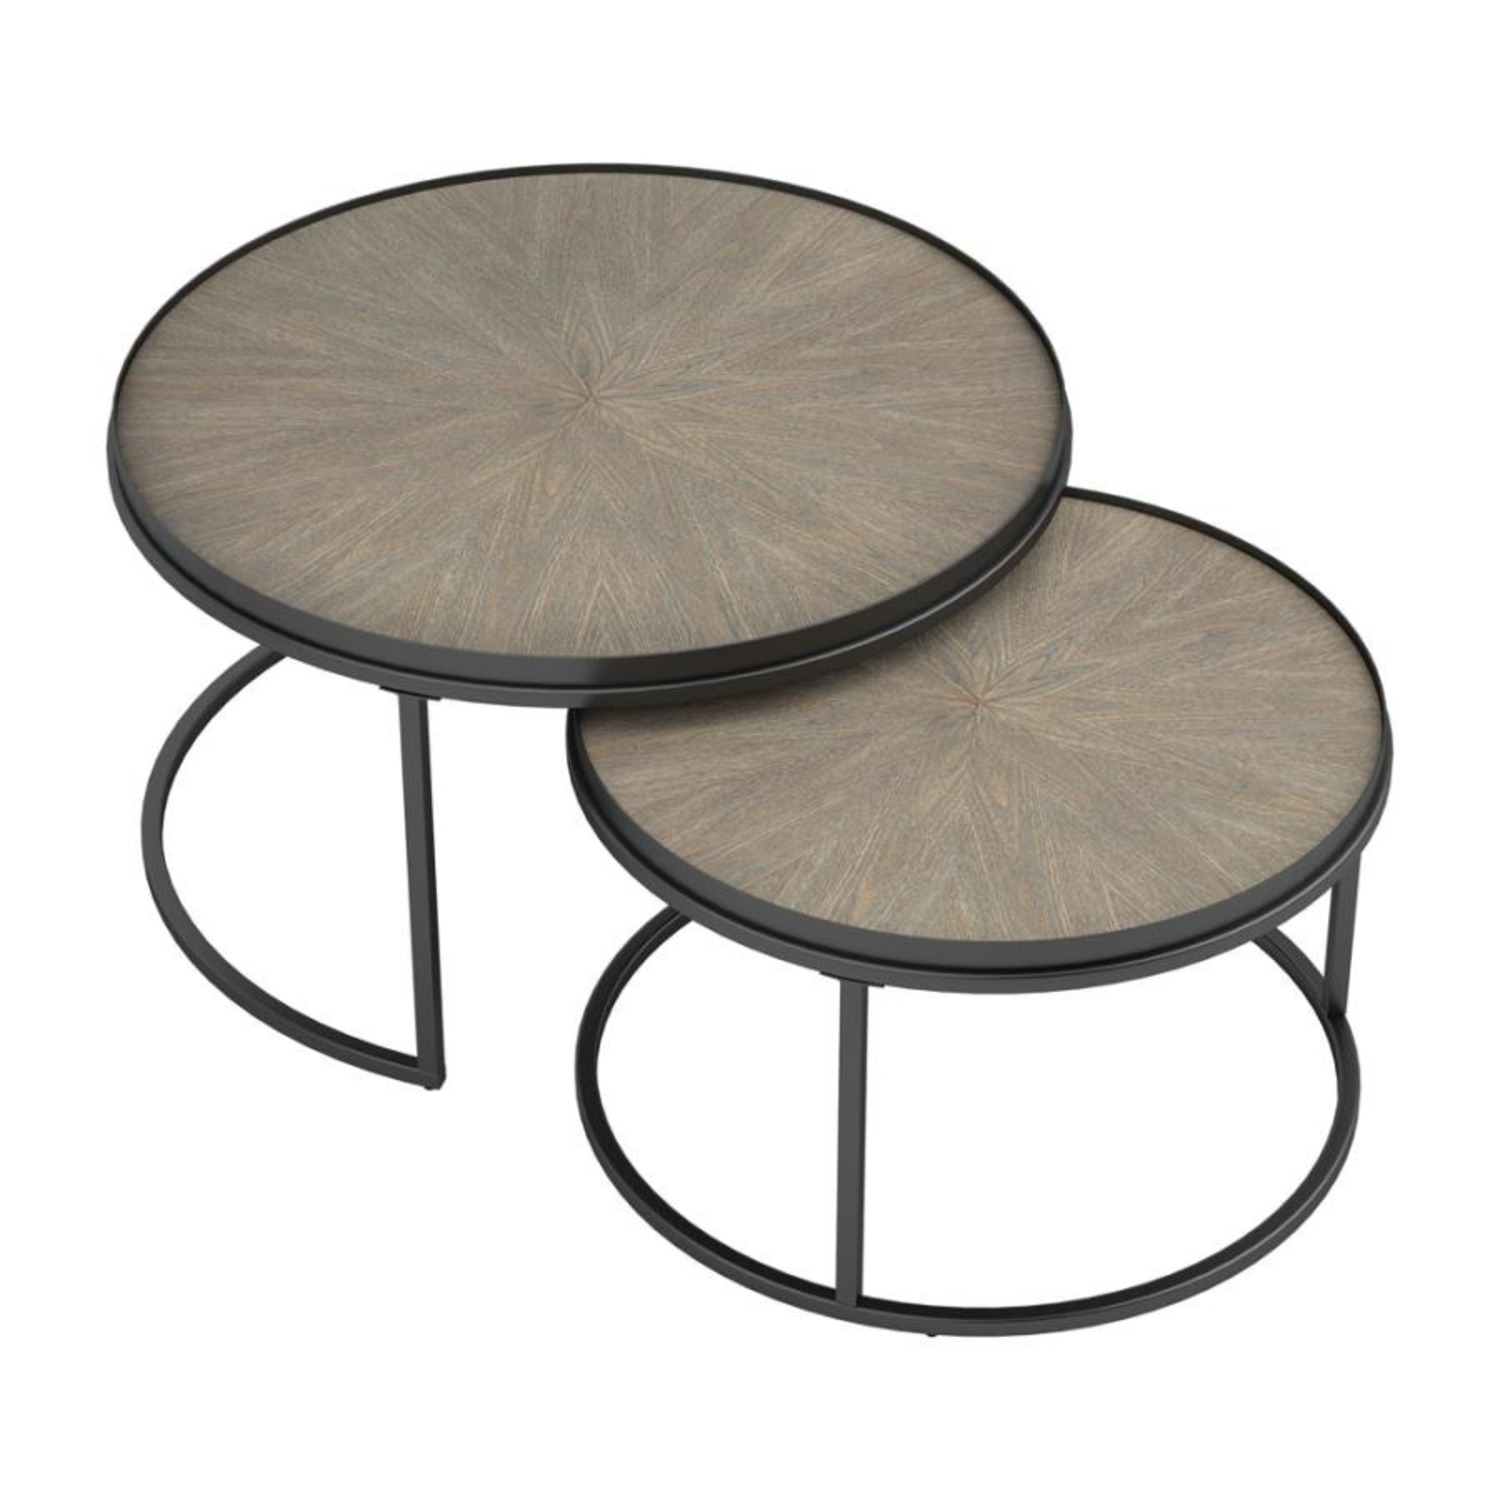 2-Piece Nesting Table In Weathered Elm Finish - image-0